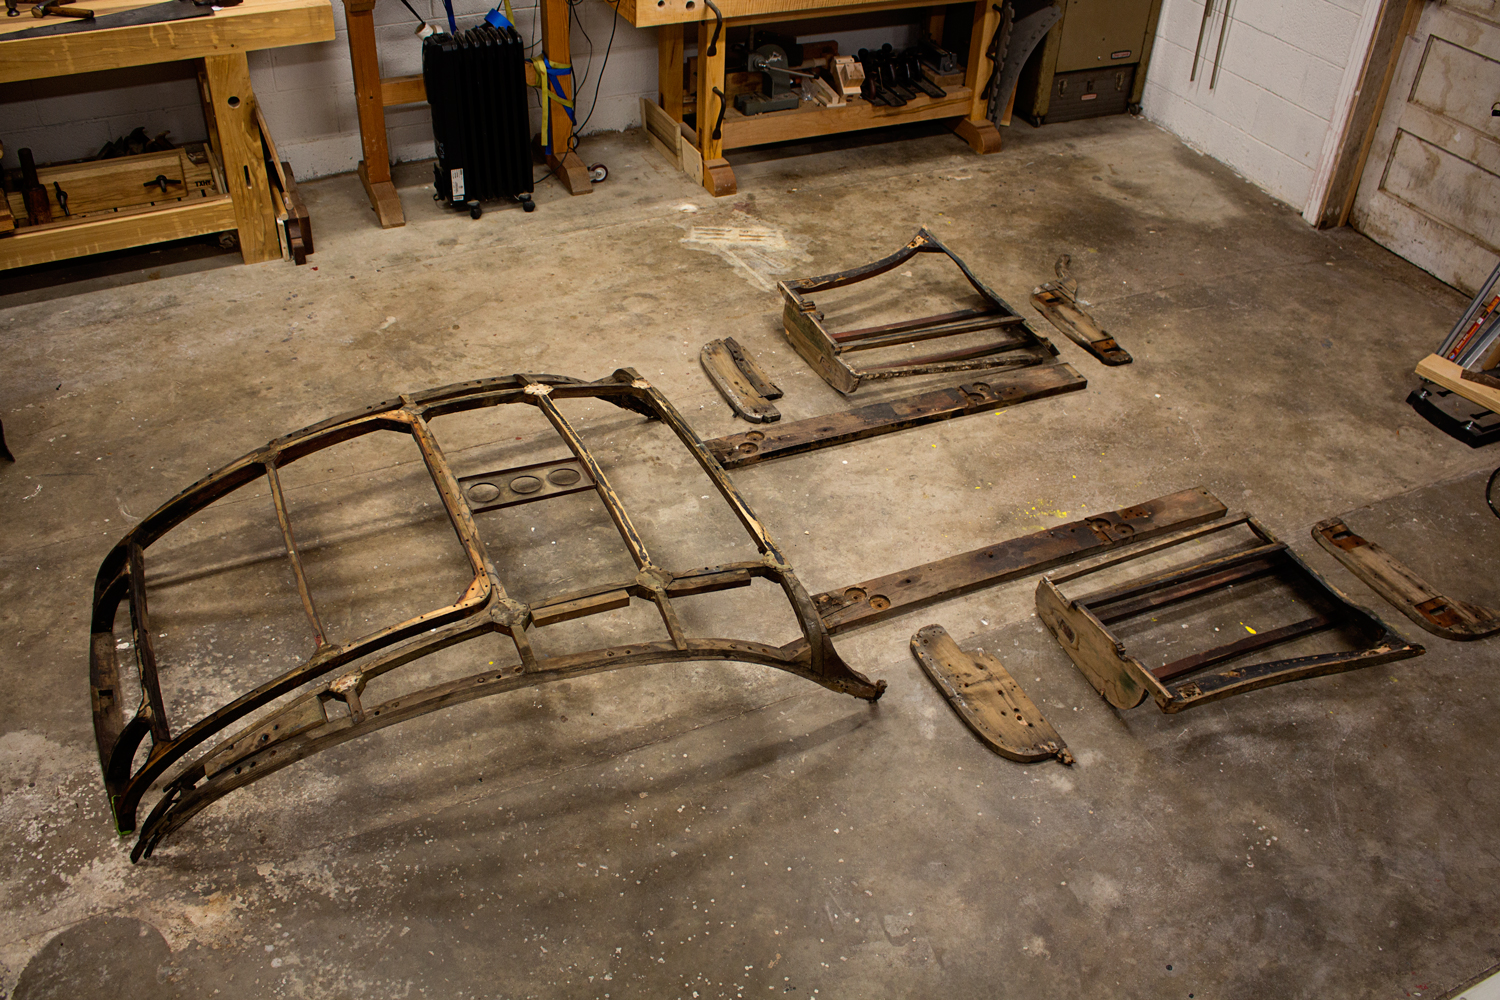 This is what I was tasked with repairing. Both door frames, A-Pillar and B-Pillar parts, Door Sills, and the entire rear body and boot support structures. The goal was to restore what could be saved and replace what couldn't.